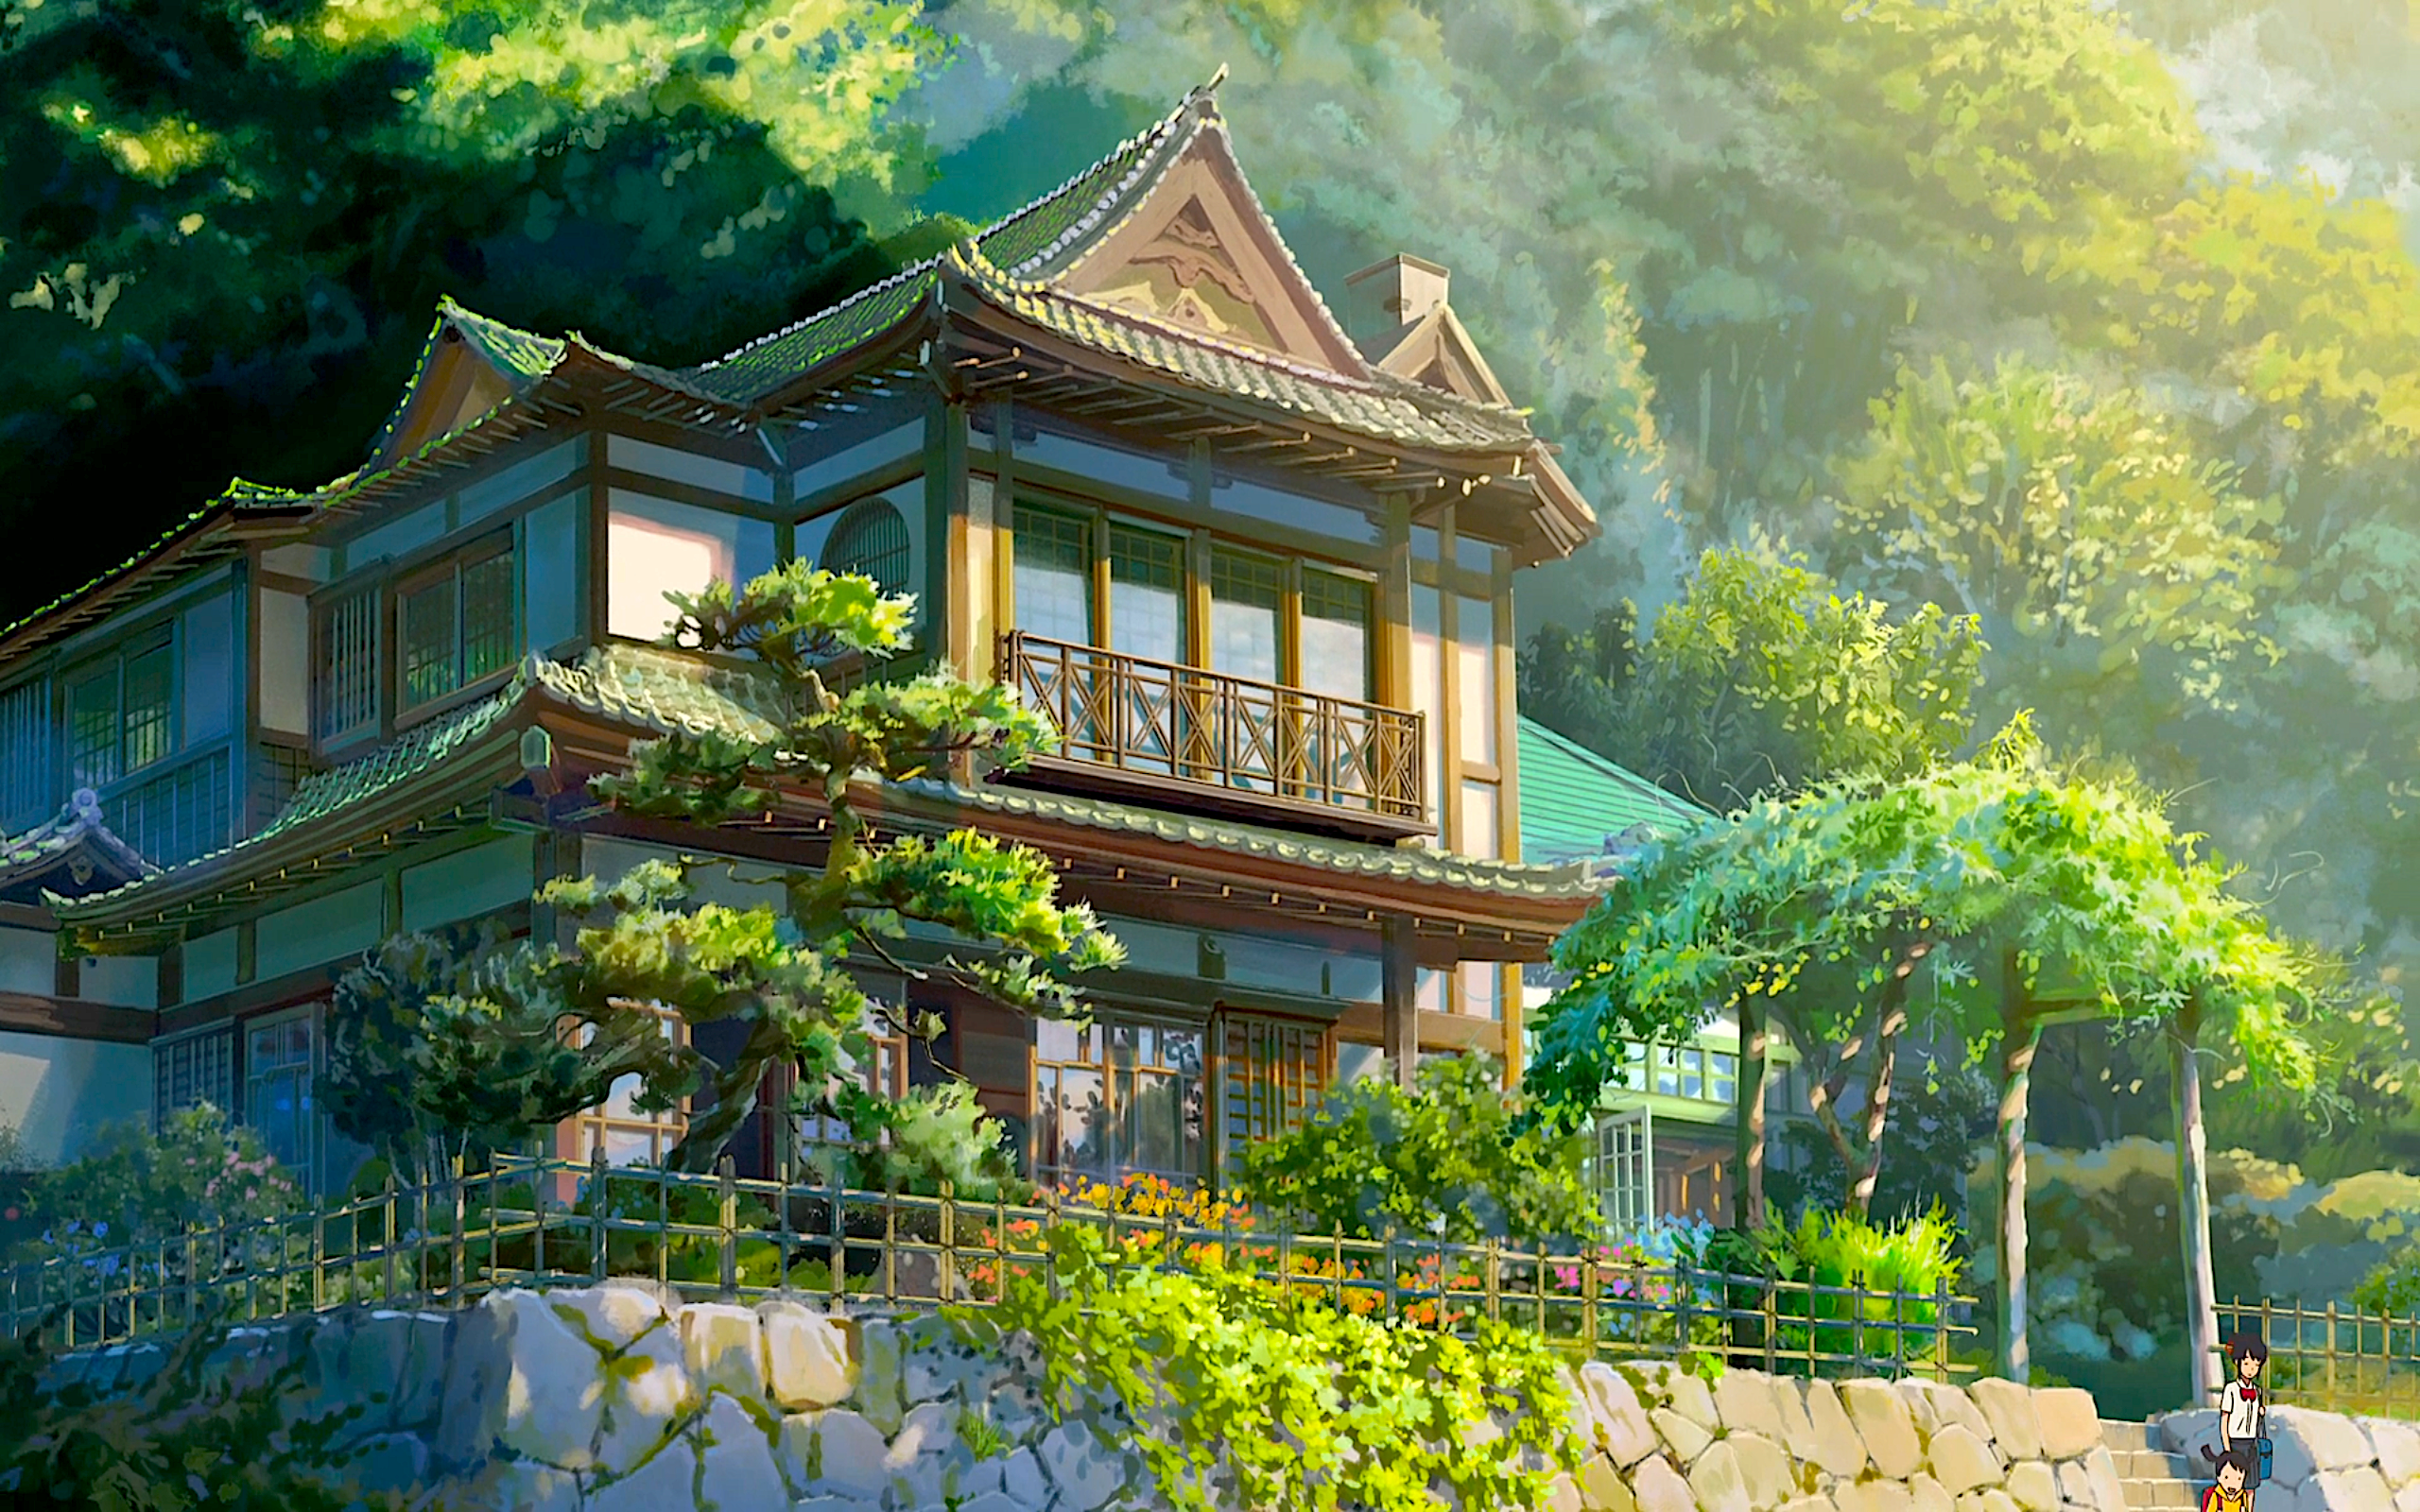 Miyamizu Residence HD Wallpaper Background Image 2560x1600 2560x1600